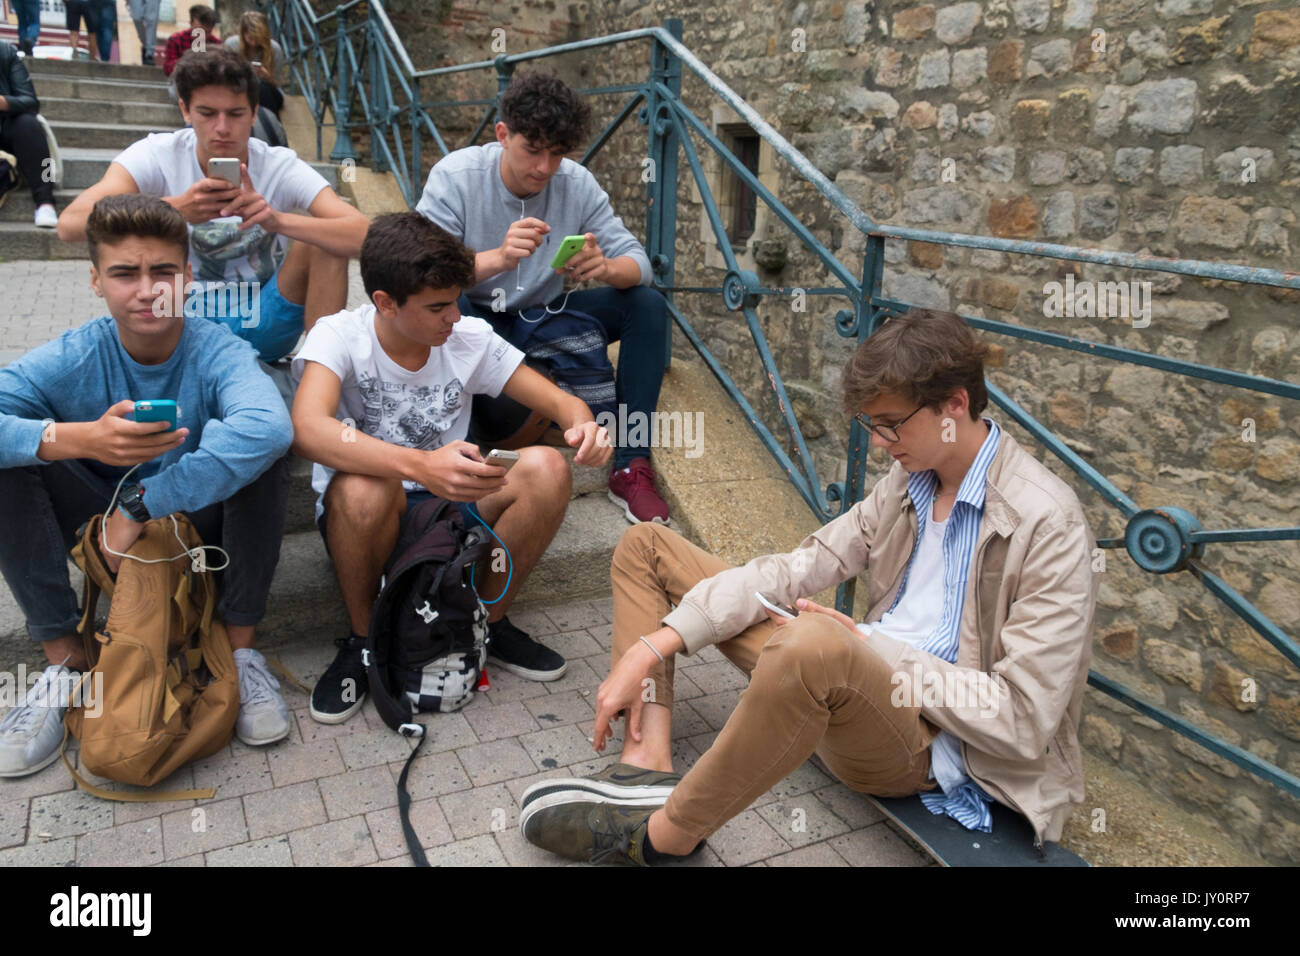 phone, kid, mobile, internet, technology, boy, smartphone, people, young, game, caucasian, person, gadget, fun, girl, playing, smart, using, online, c - Stock Image